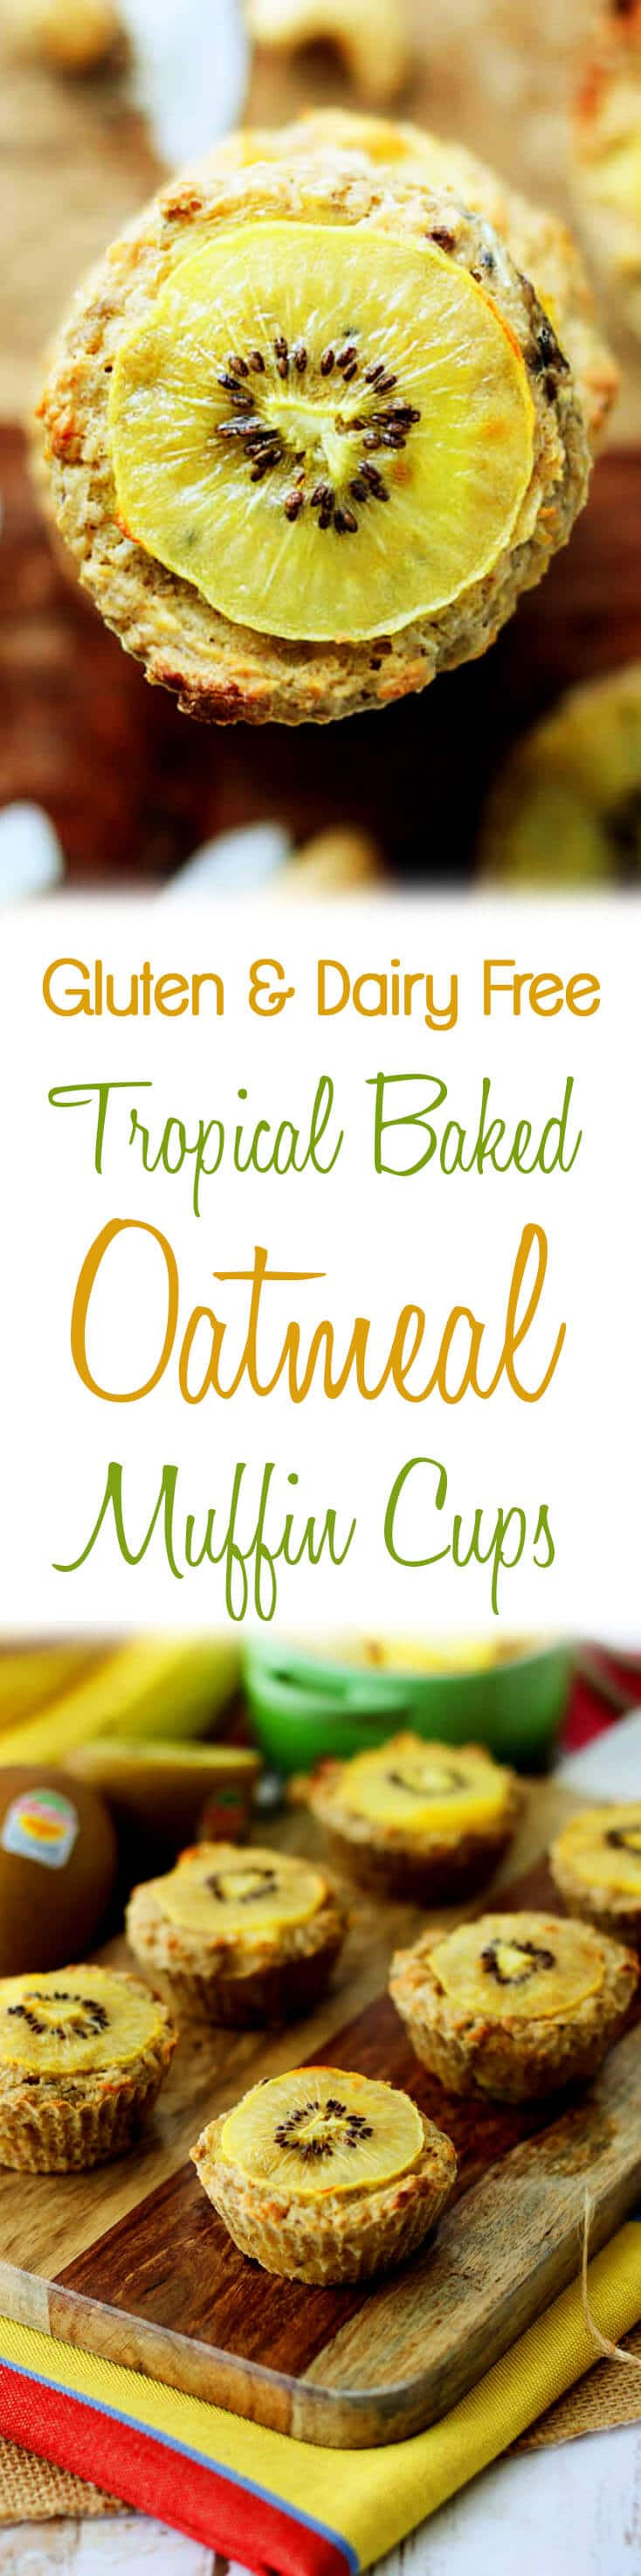 These tropical baked oatmeal muffin cups are gluten free, dairy free and low in fat! The perfect make-ahead on-the-go breakfast!